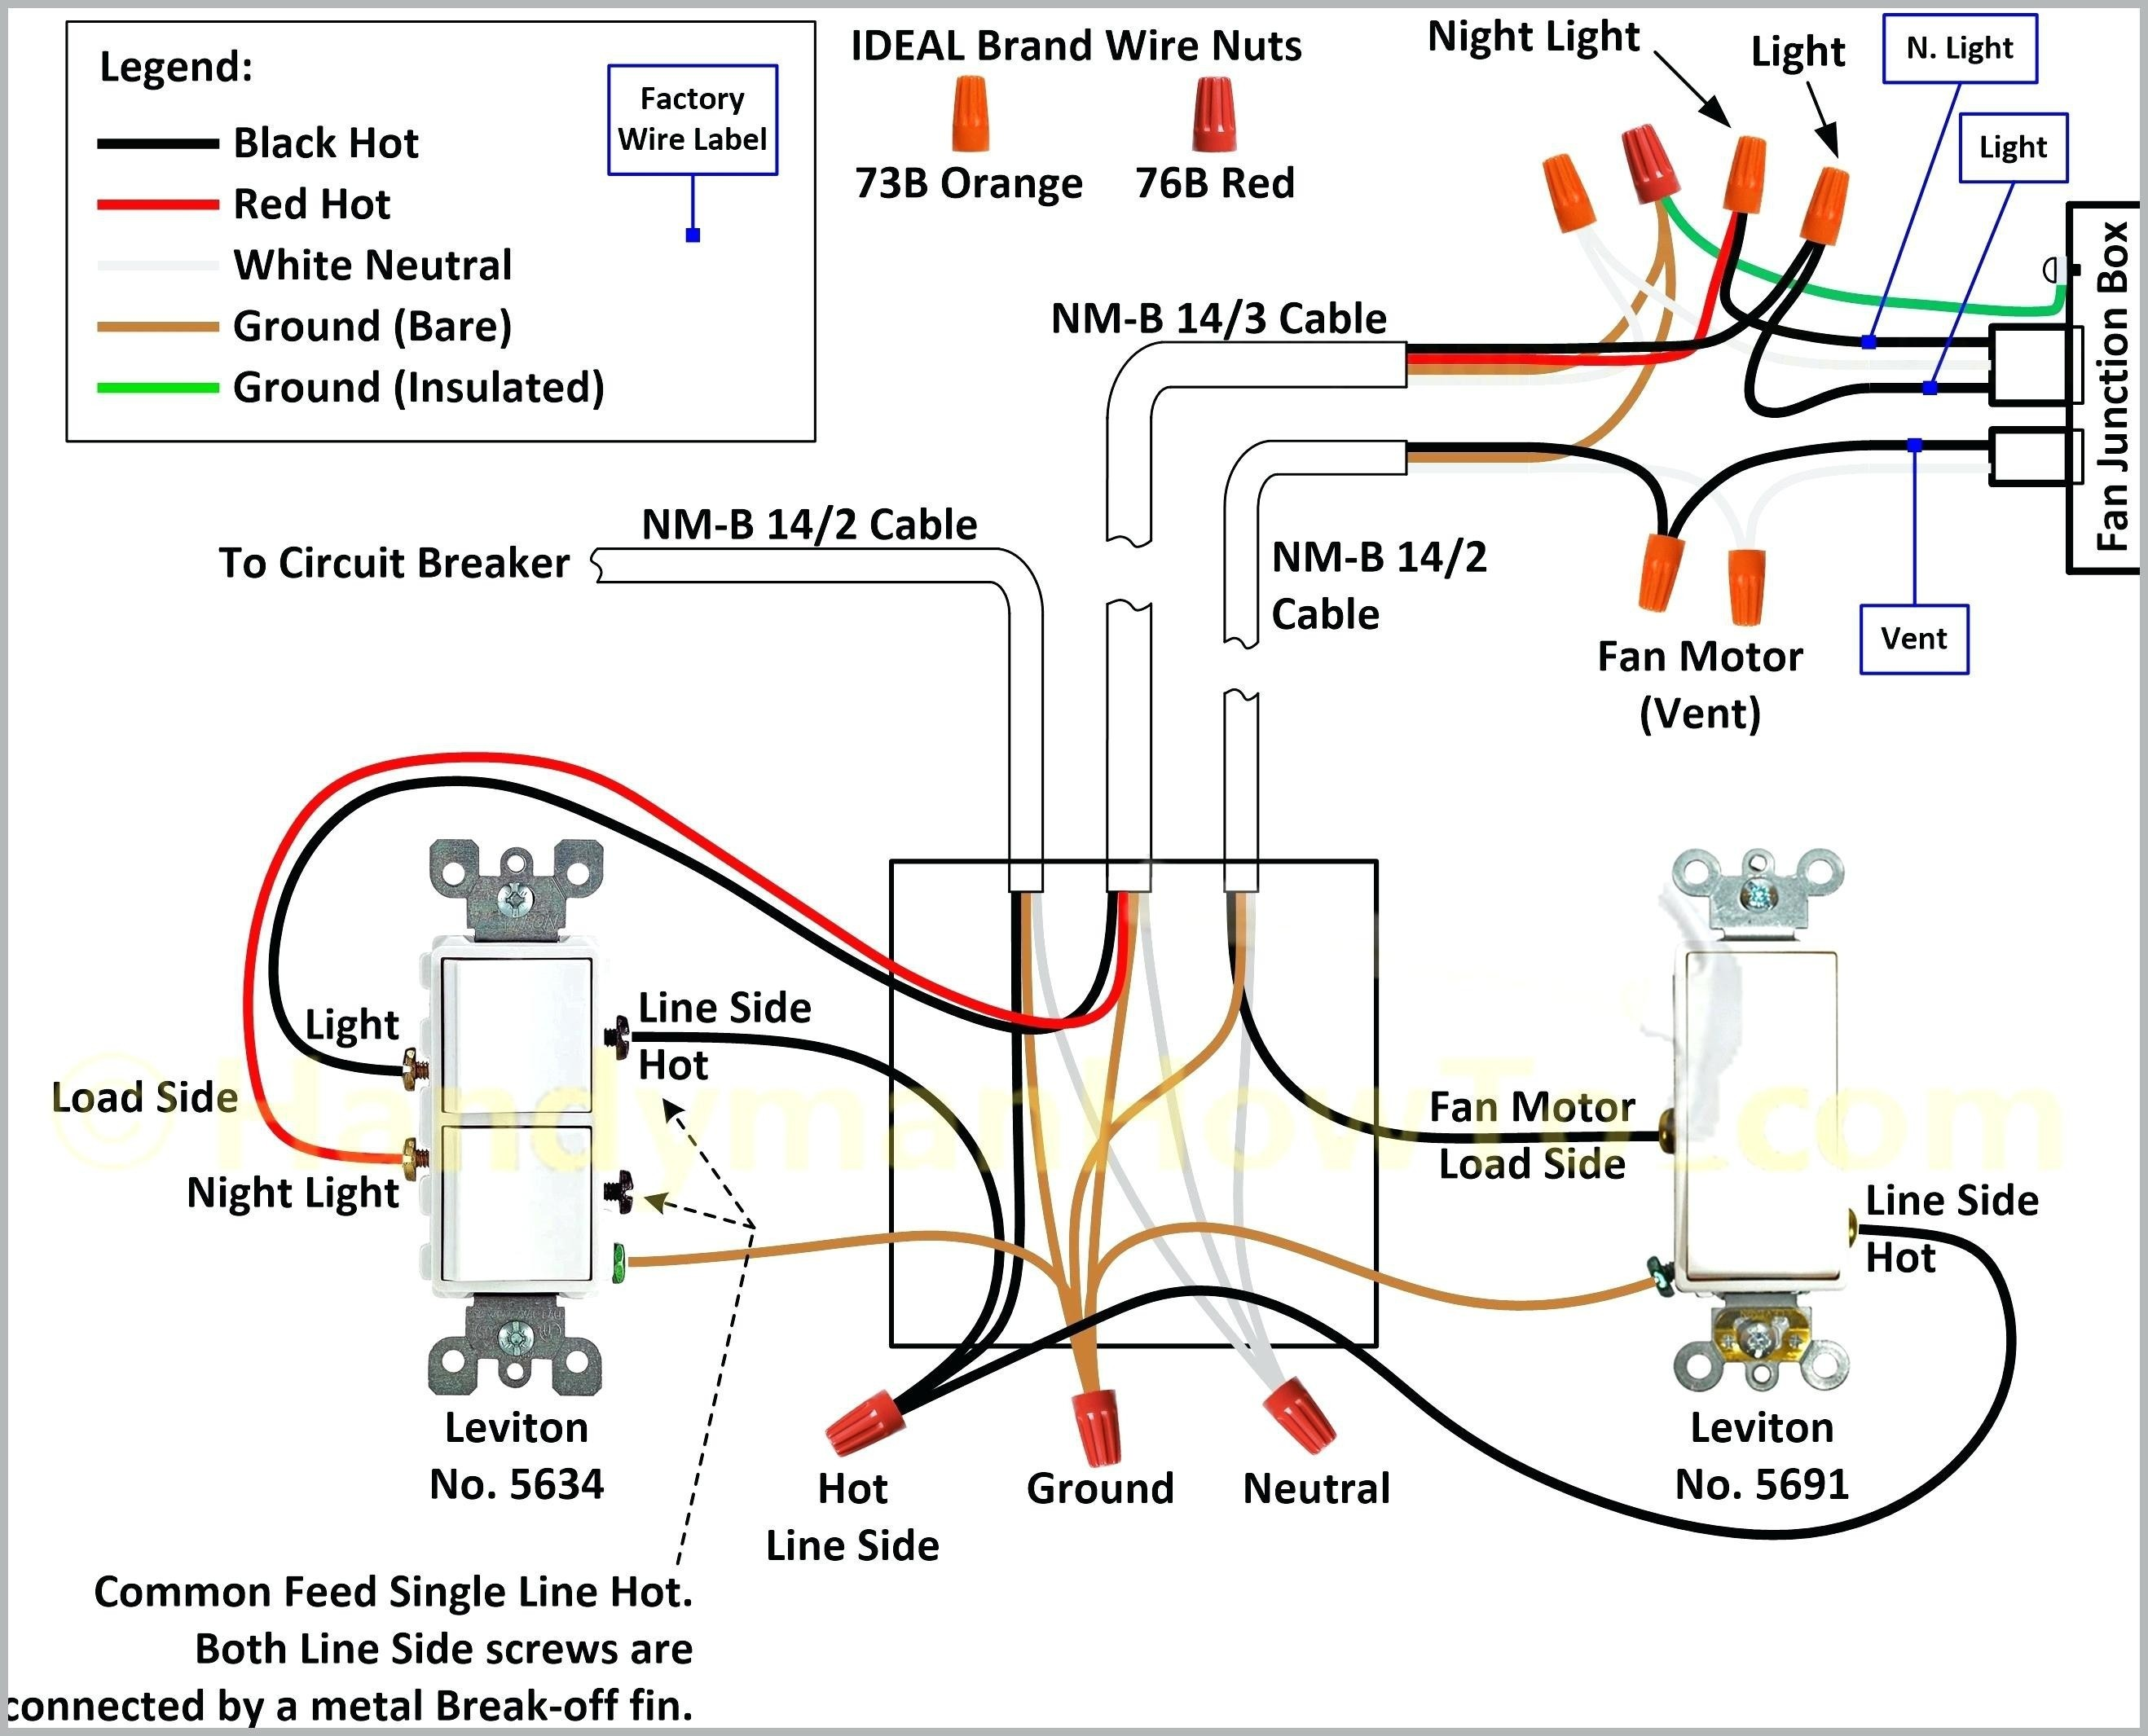 4 Wire Trailer Diagram | My Wiring DIagram  Wire Trailer Wiring Diagram Common on